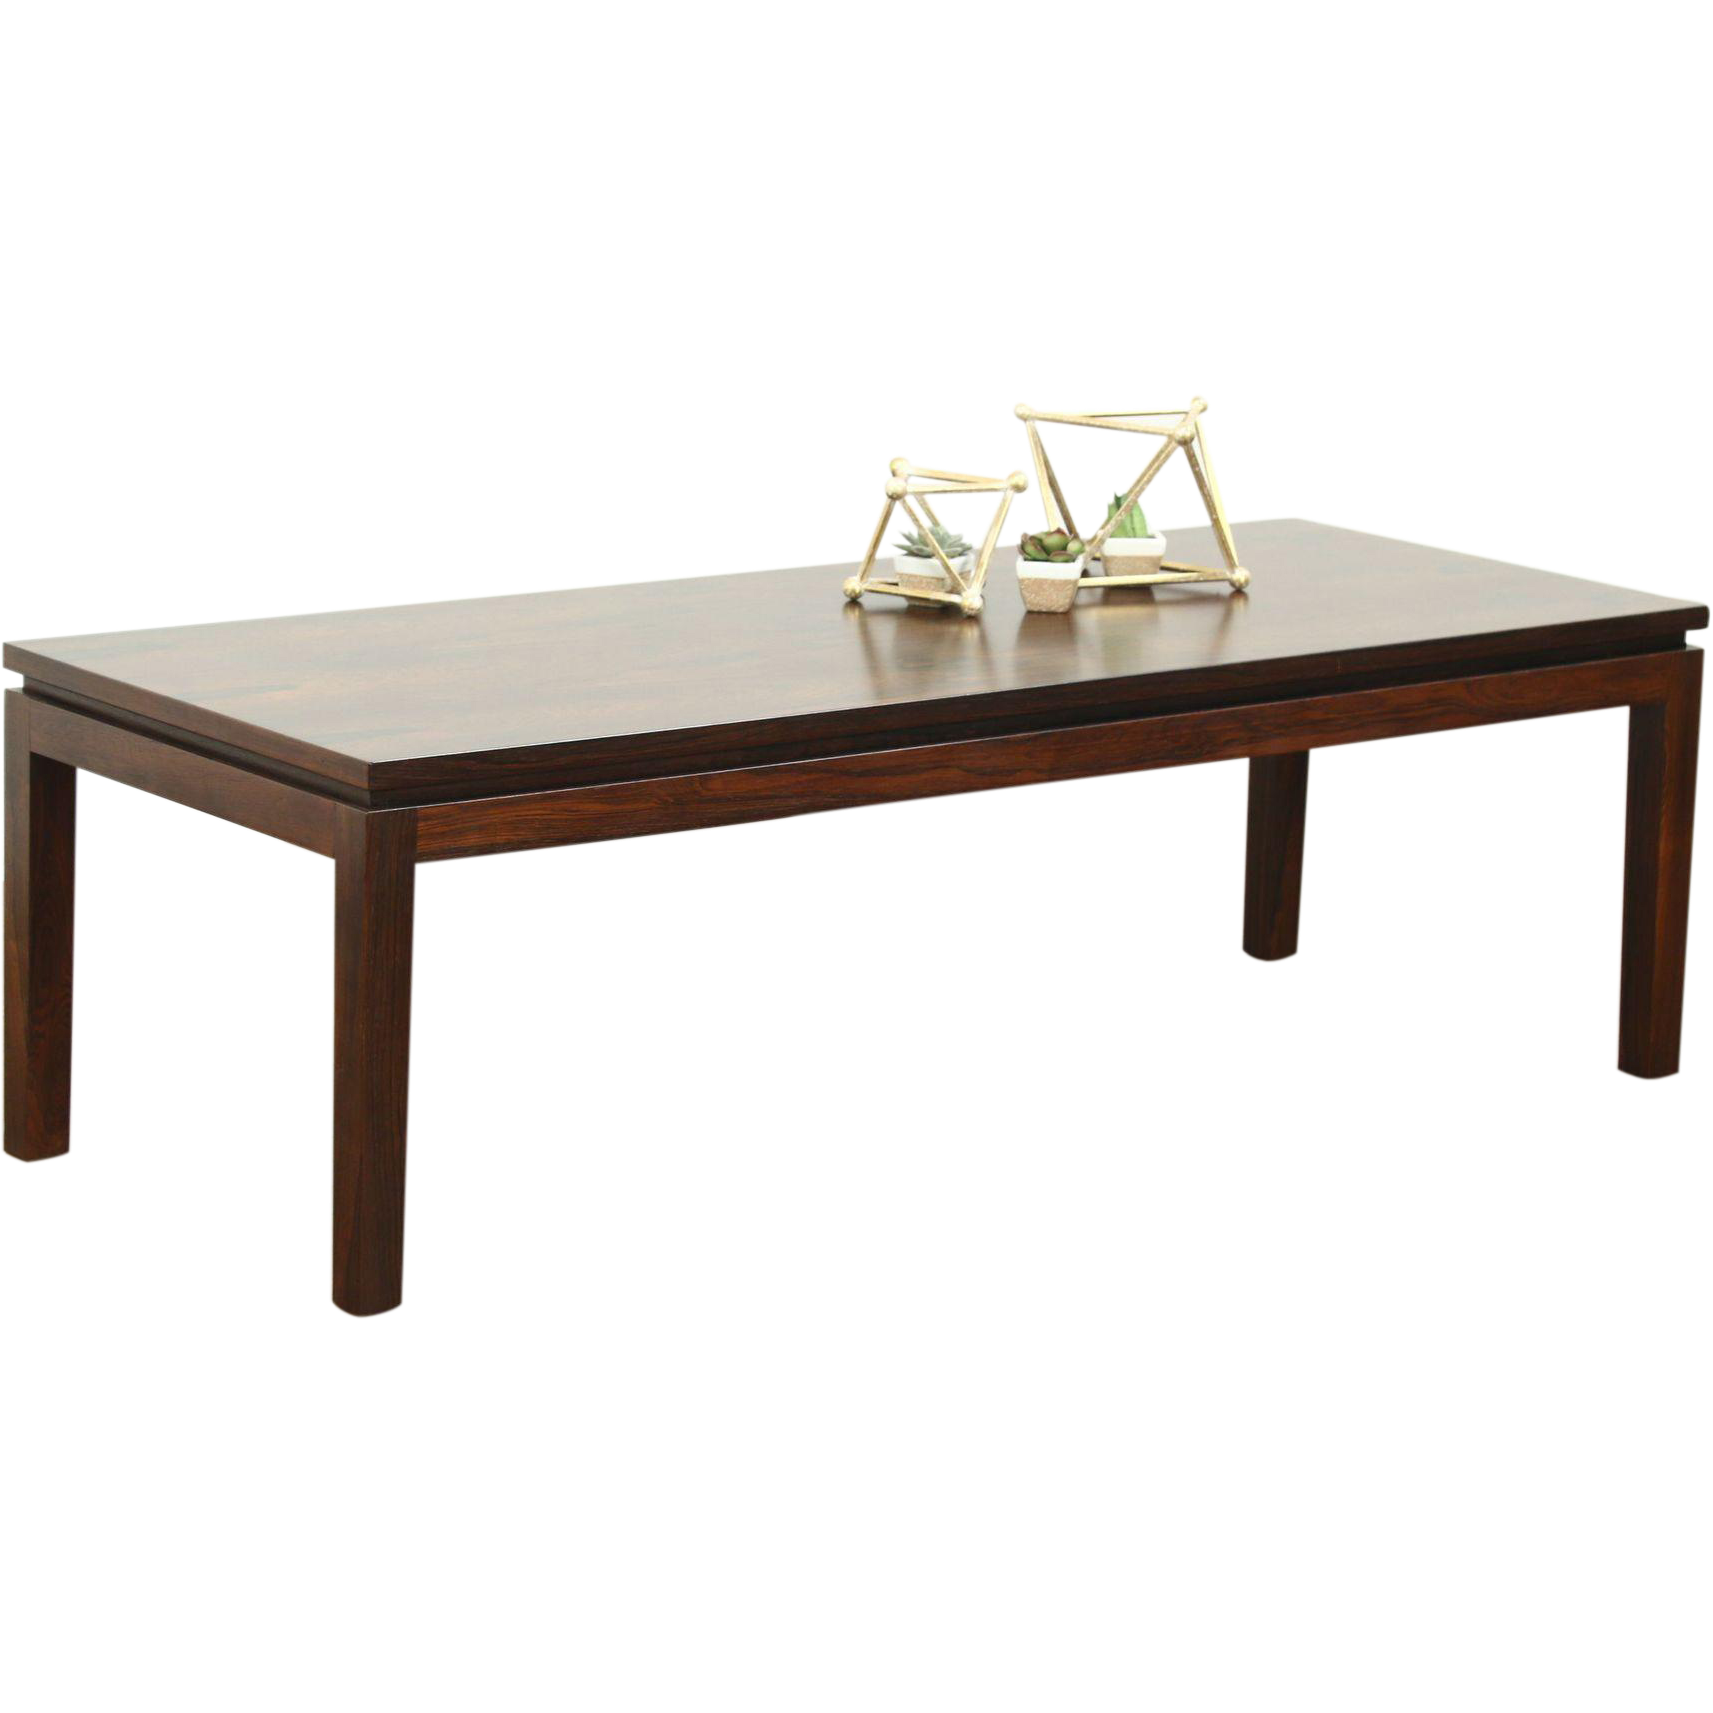 Midcentury Danish Modern 1960's Vintage Rosewood Coffee Table